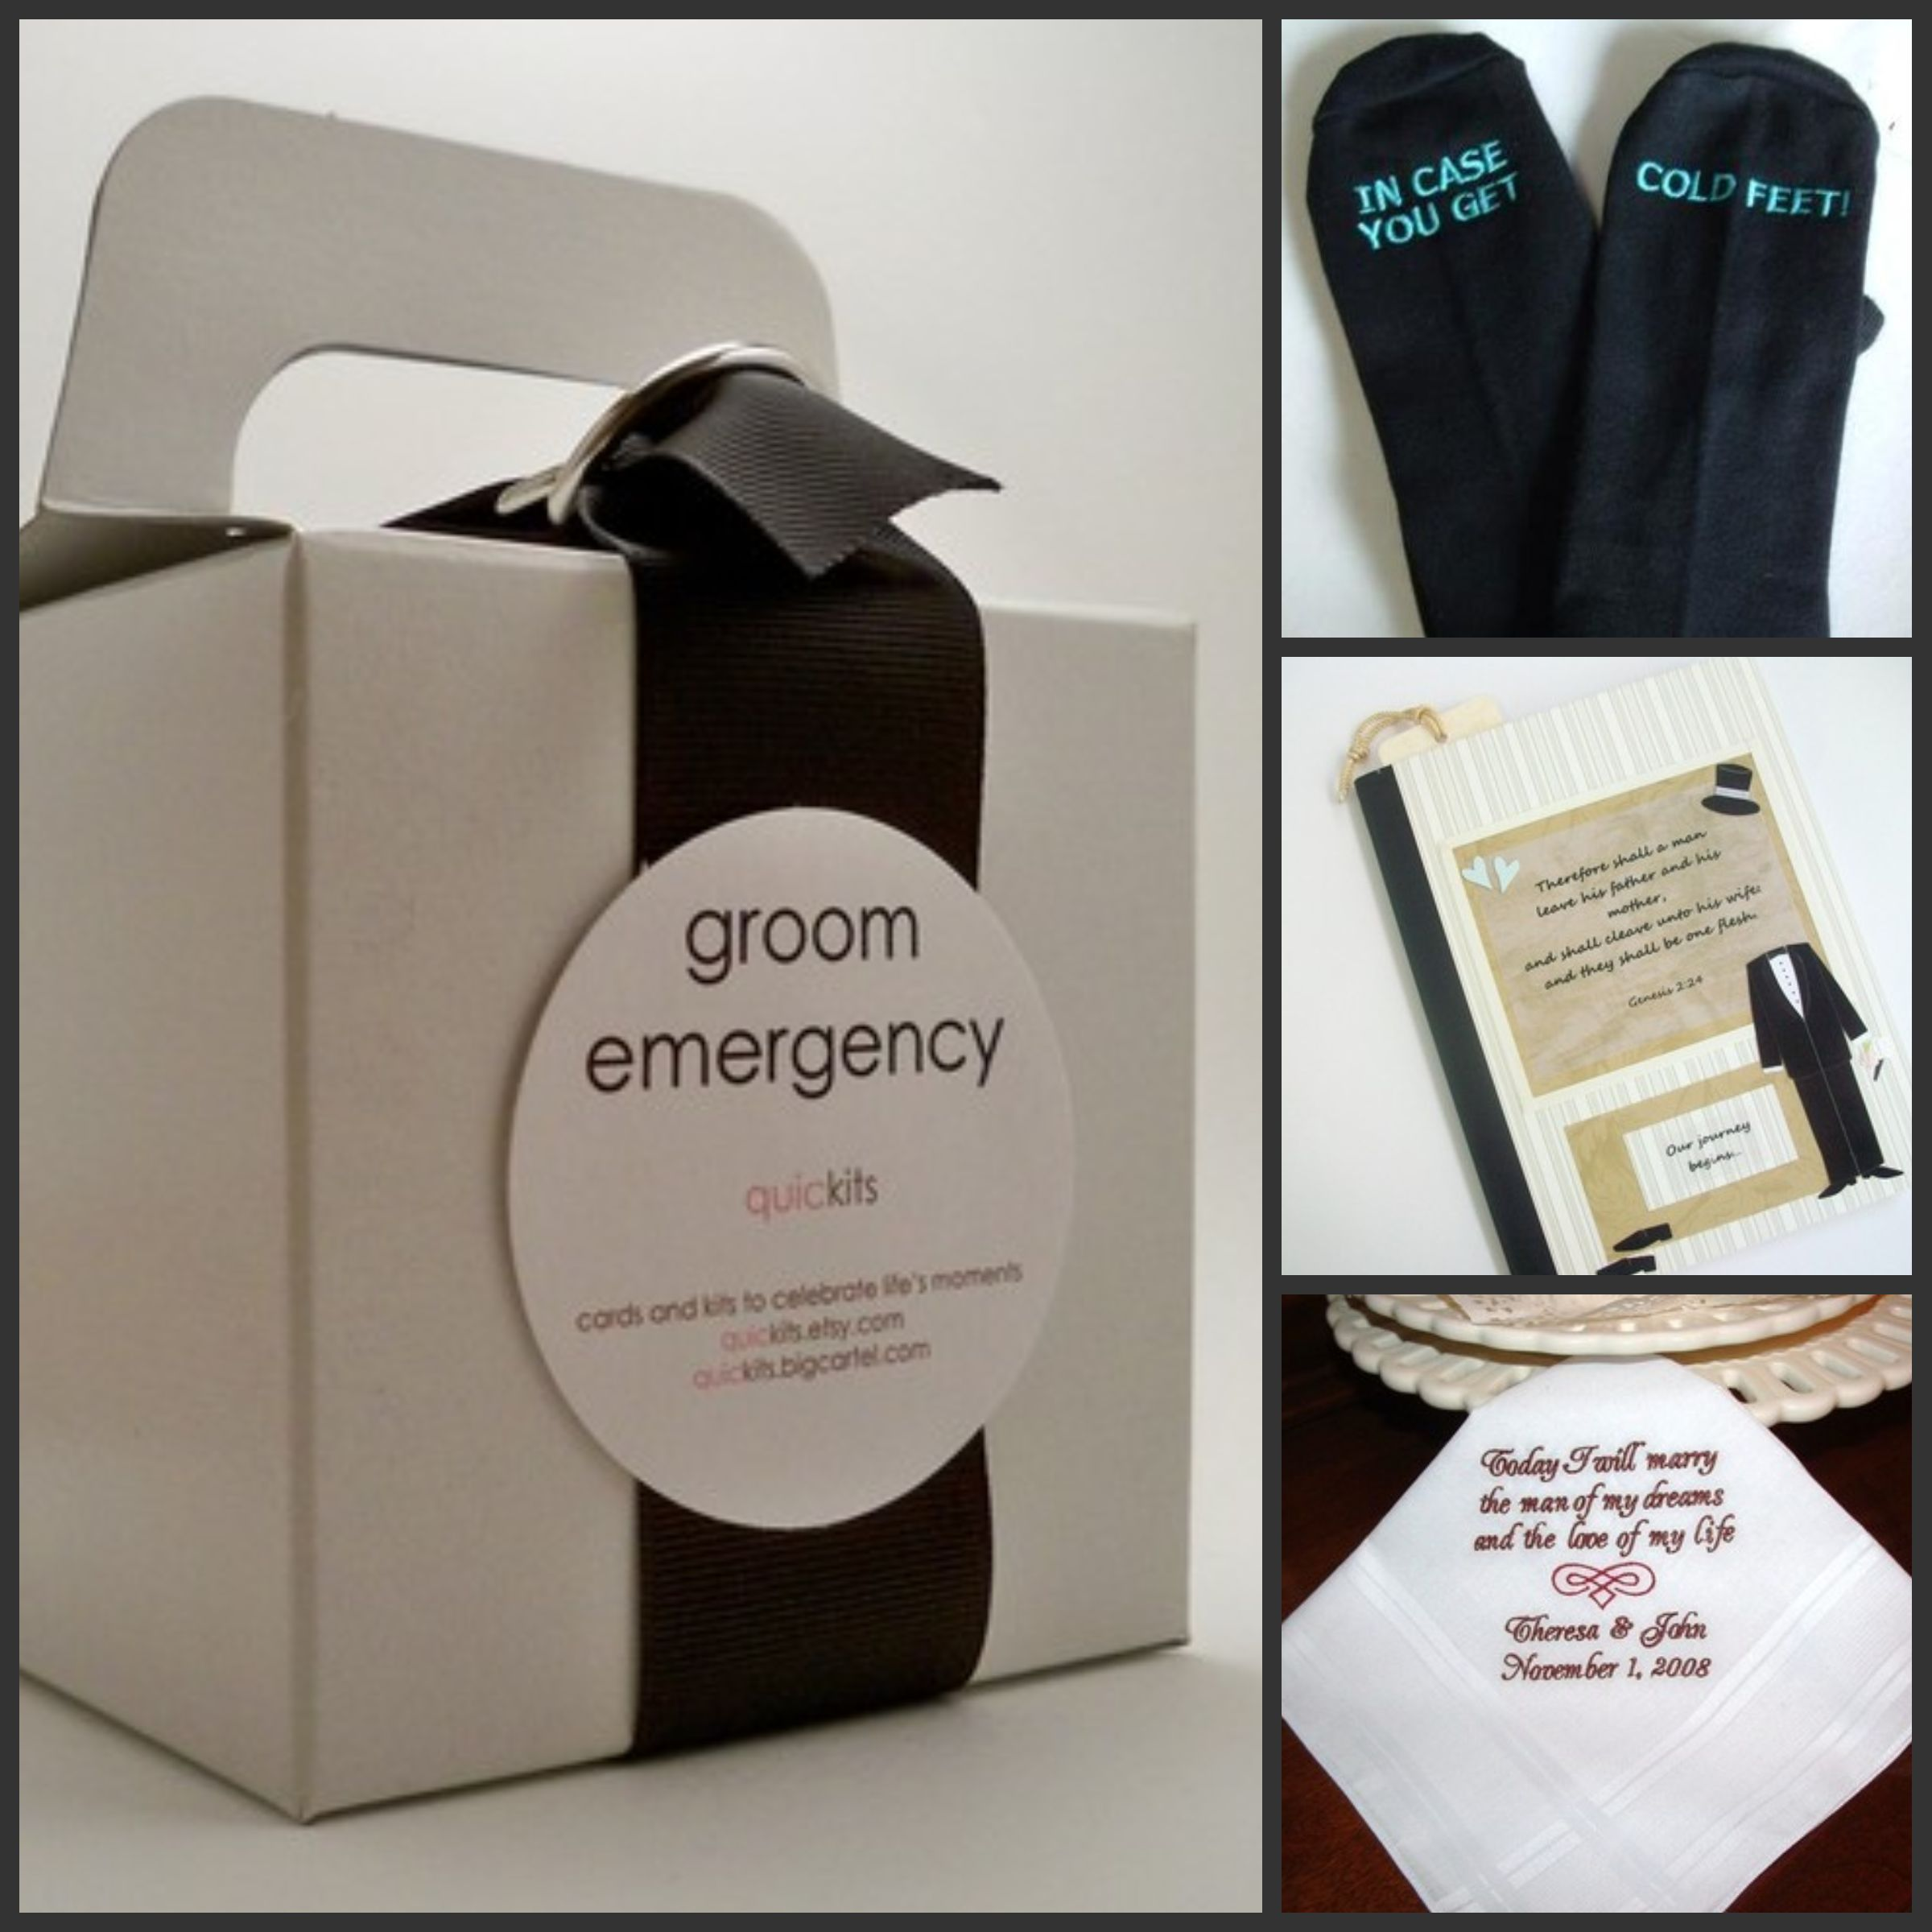 Wedding Gift Basket Ideas For Bride And Groom : personal gifts for your groom clockwise from left groom emergency kit ...